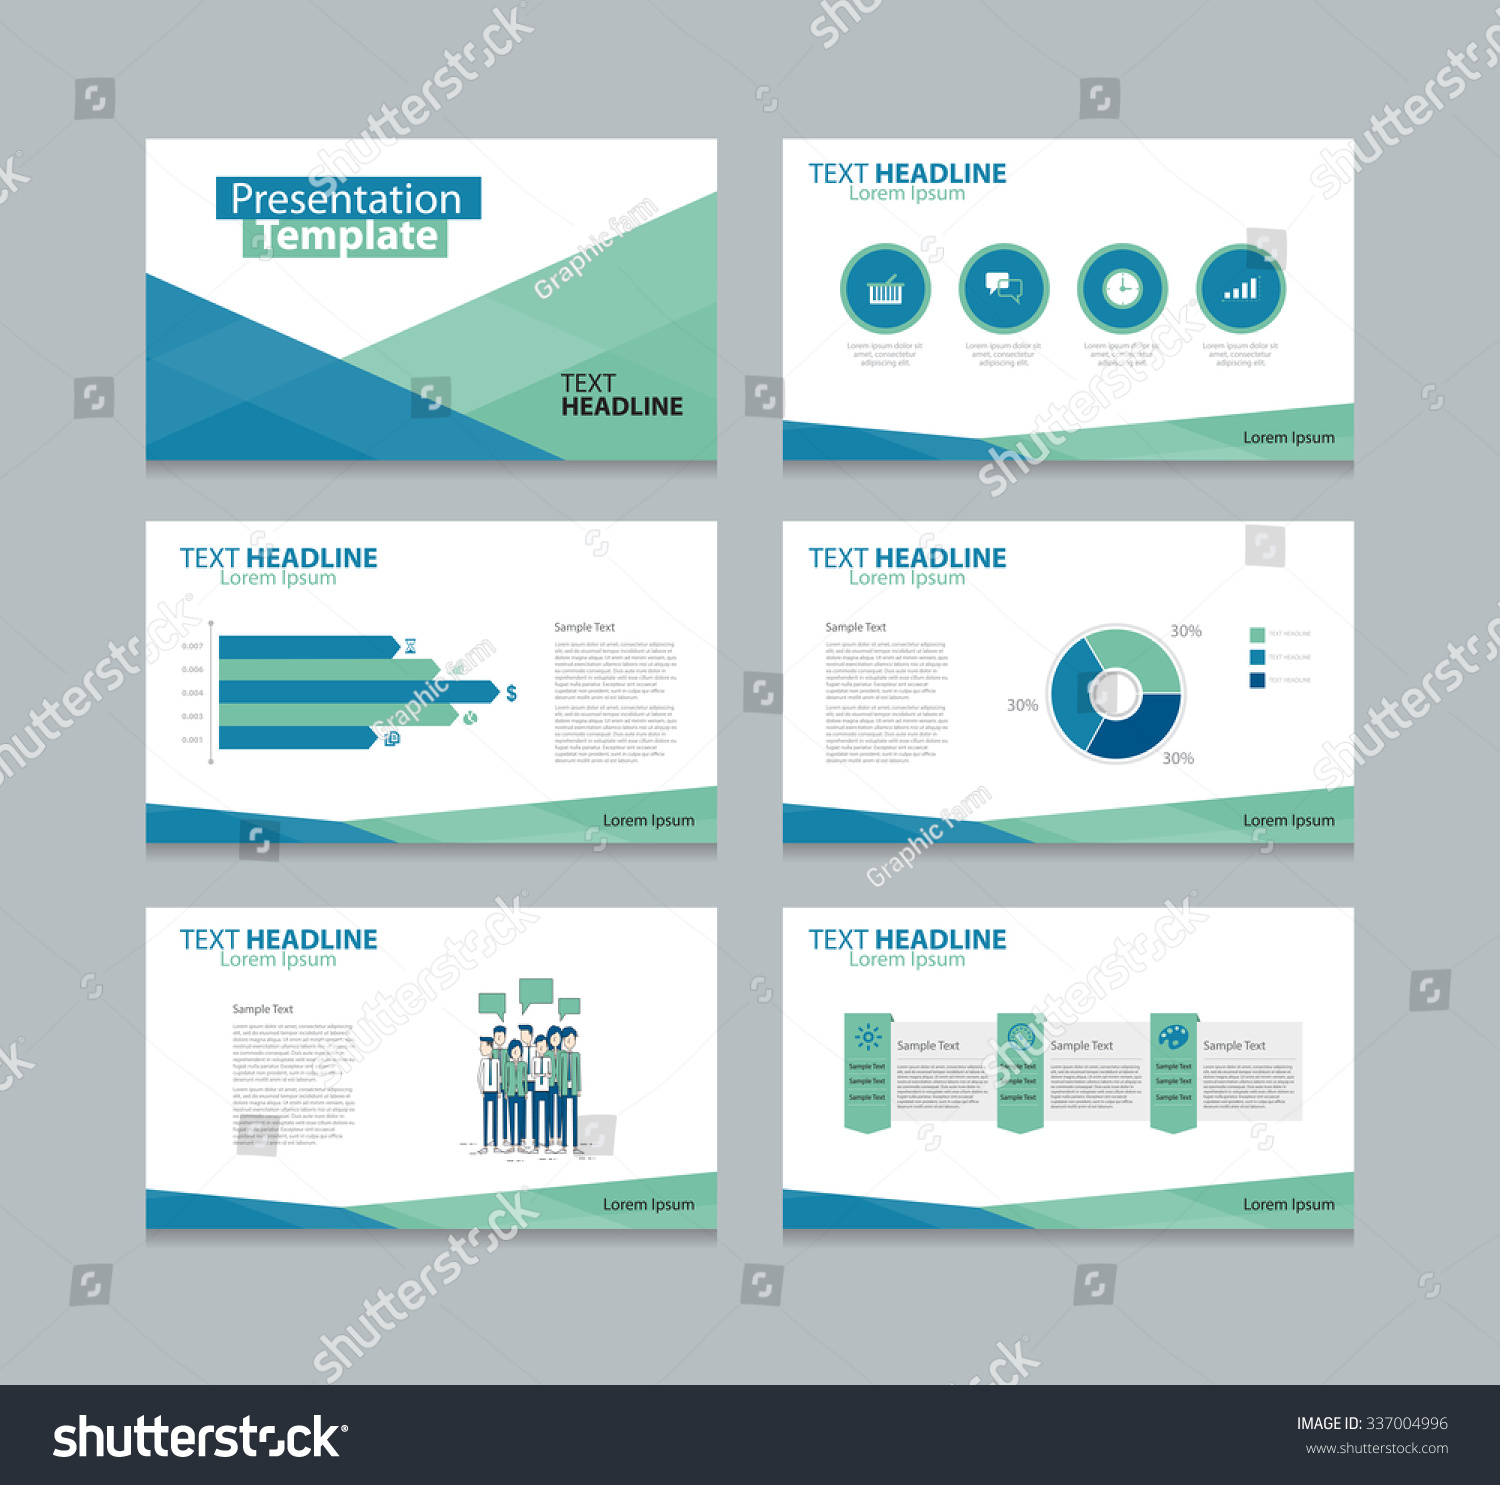 business presentation slide template design flat stock vector, Sample Presentation Slides Template, Presentation templates